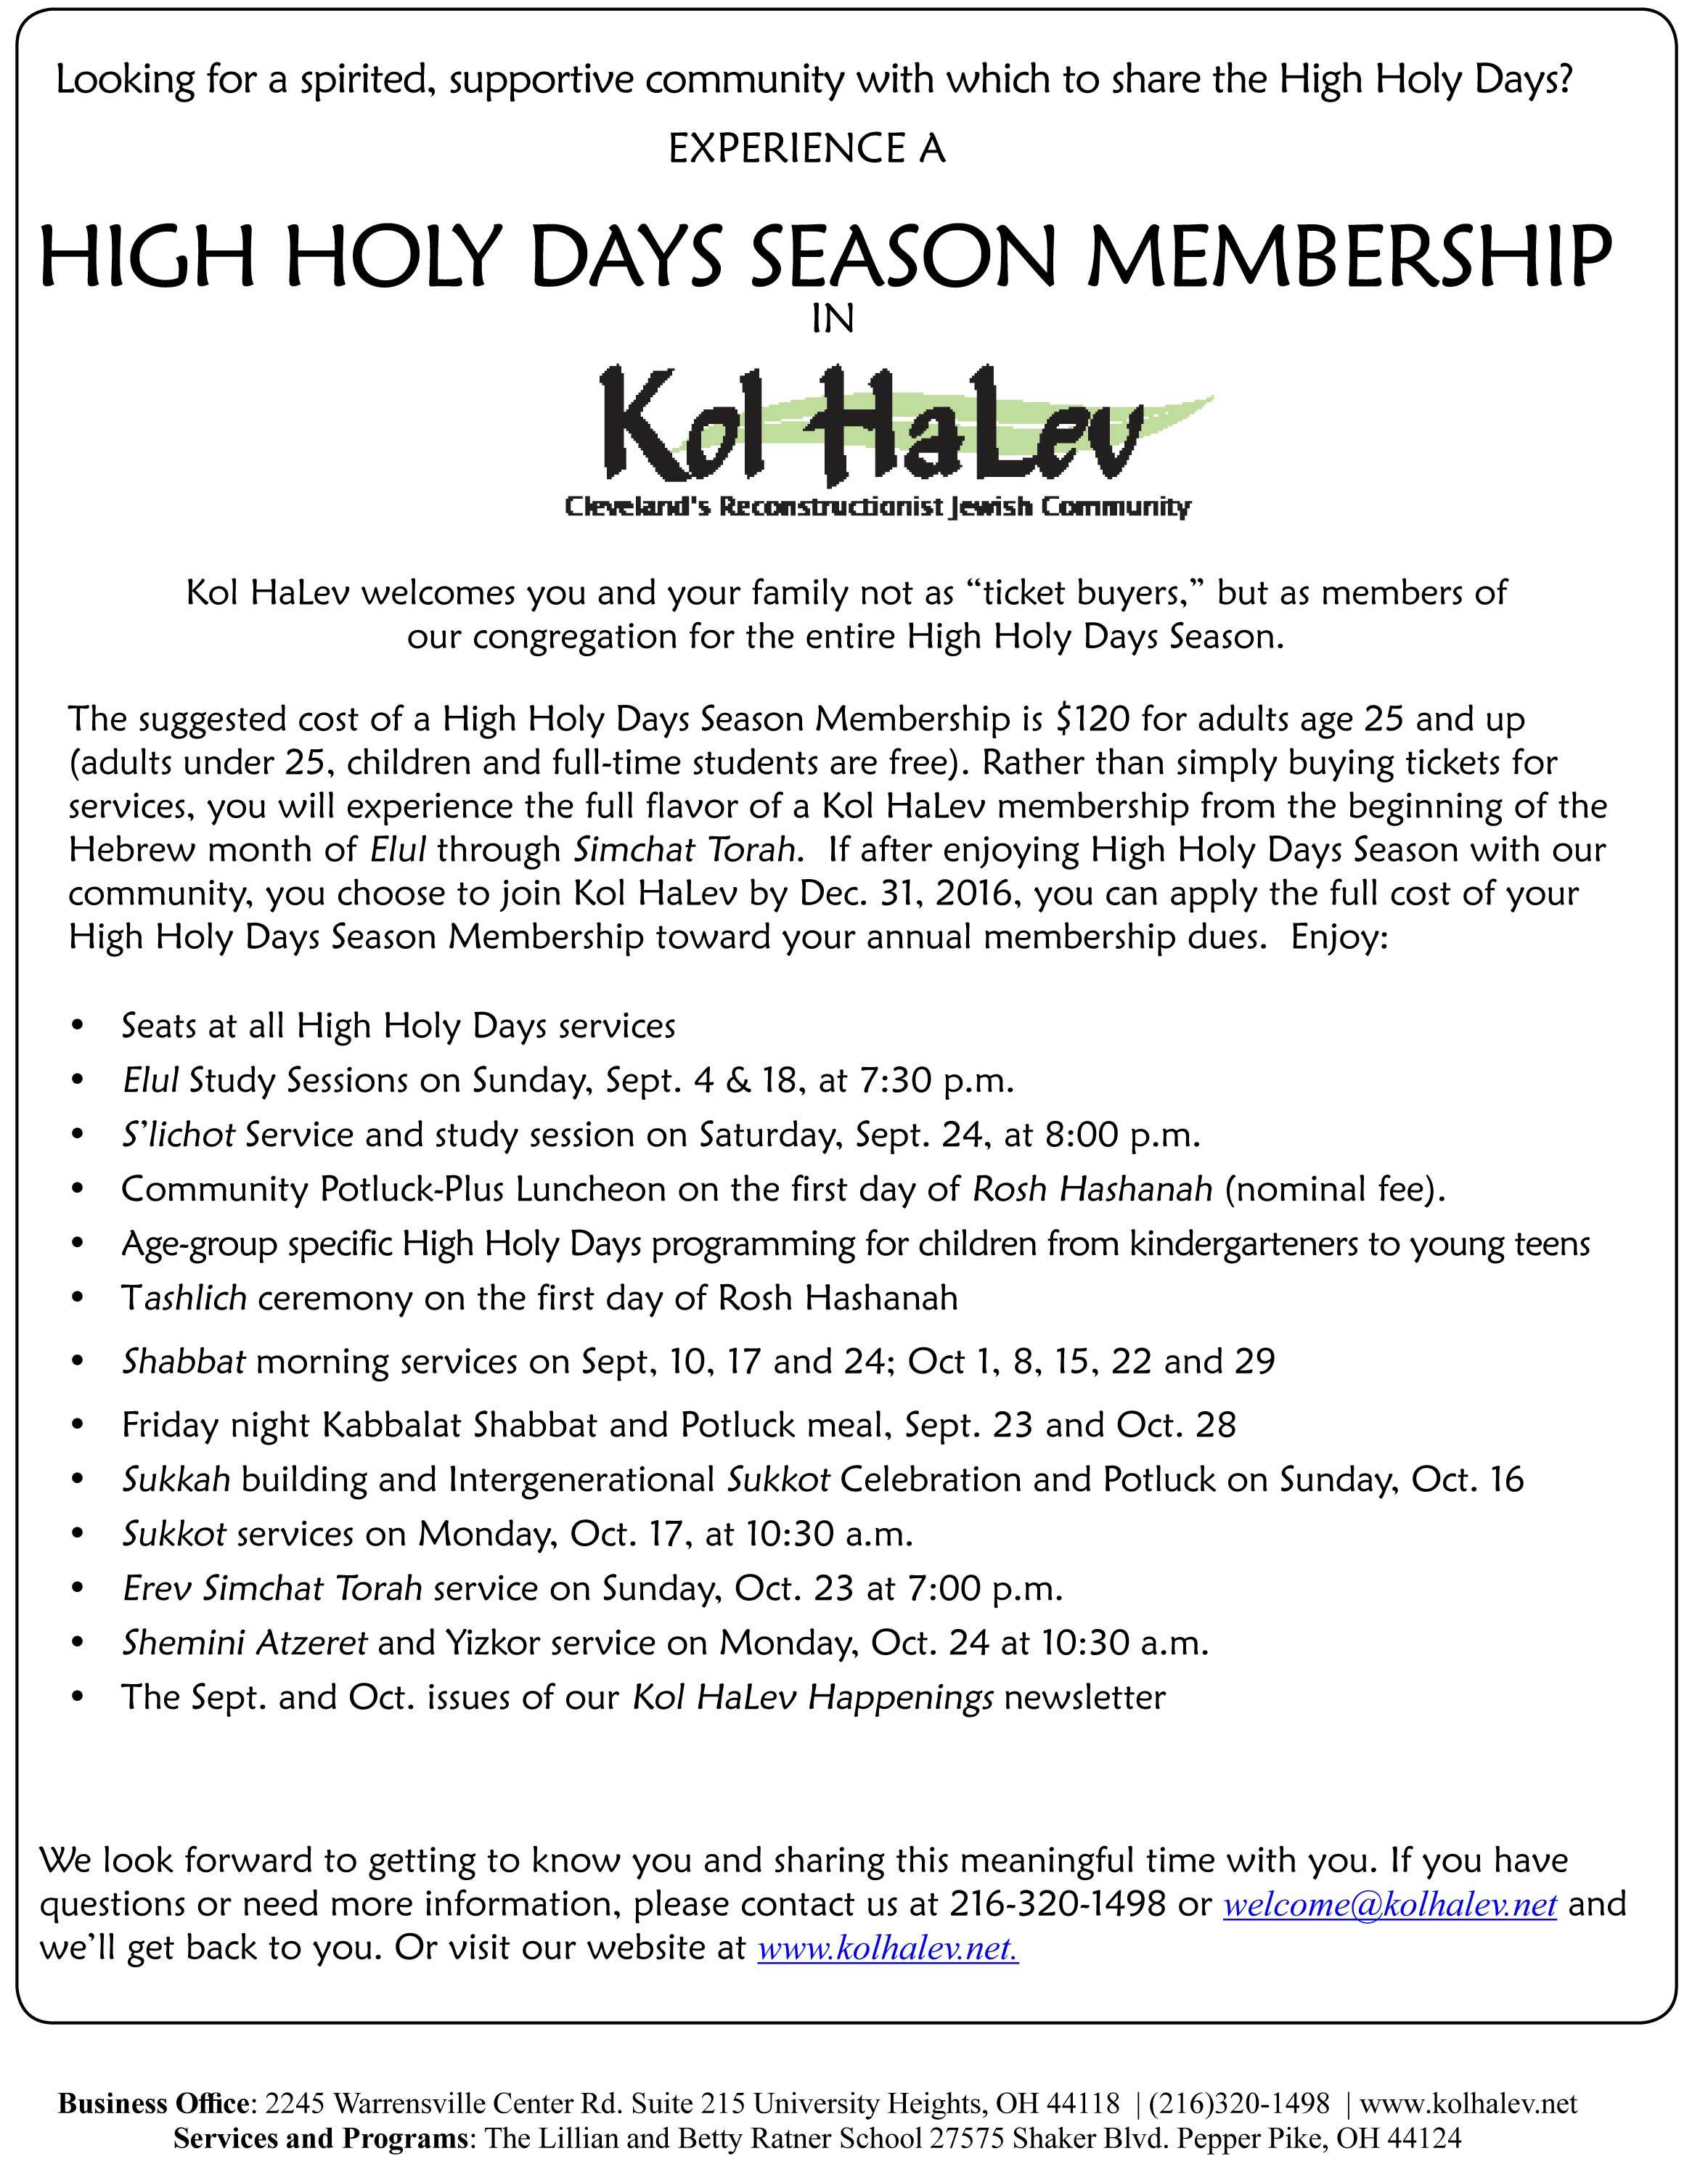 High Holy Days Season Membership – Get to know Kol HaLev!